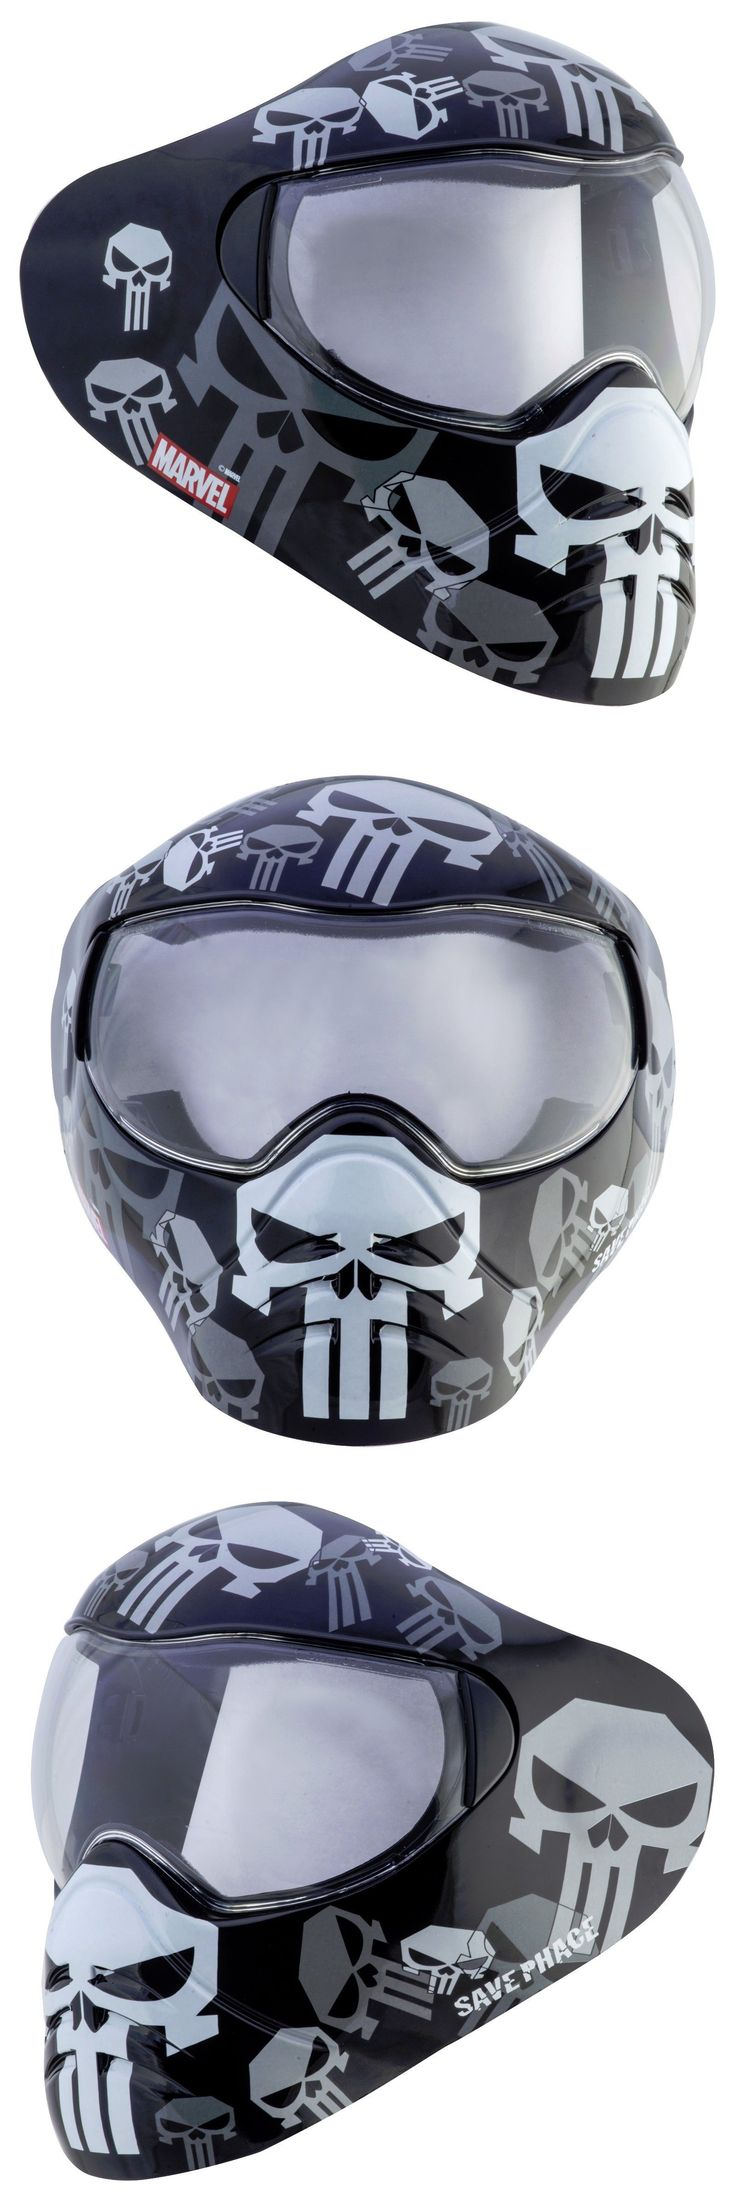 Hats and Helmets 159148: New Save Phace Marvel Avengers Series Sum2 Sports Utility Goggles Mask Punisher -> BUY IT NOW ONLY: $83.49 on eBay!